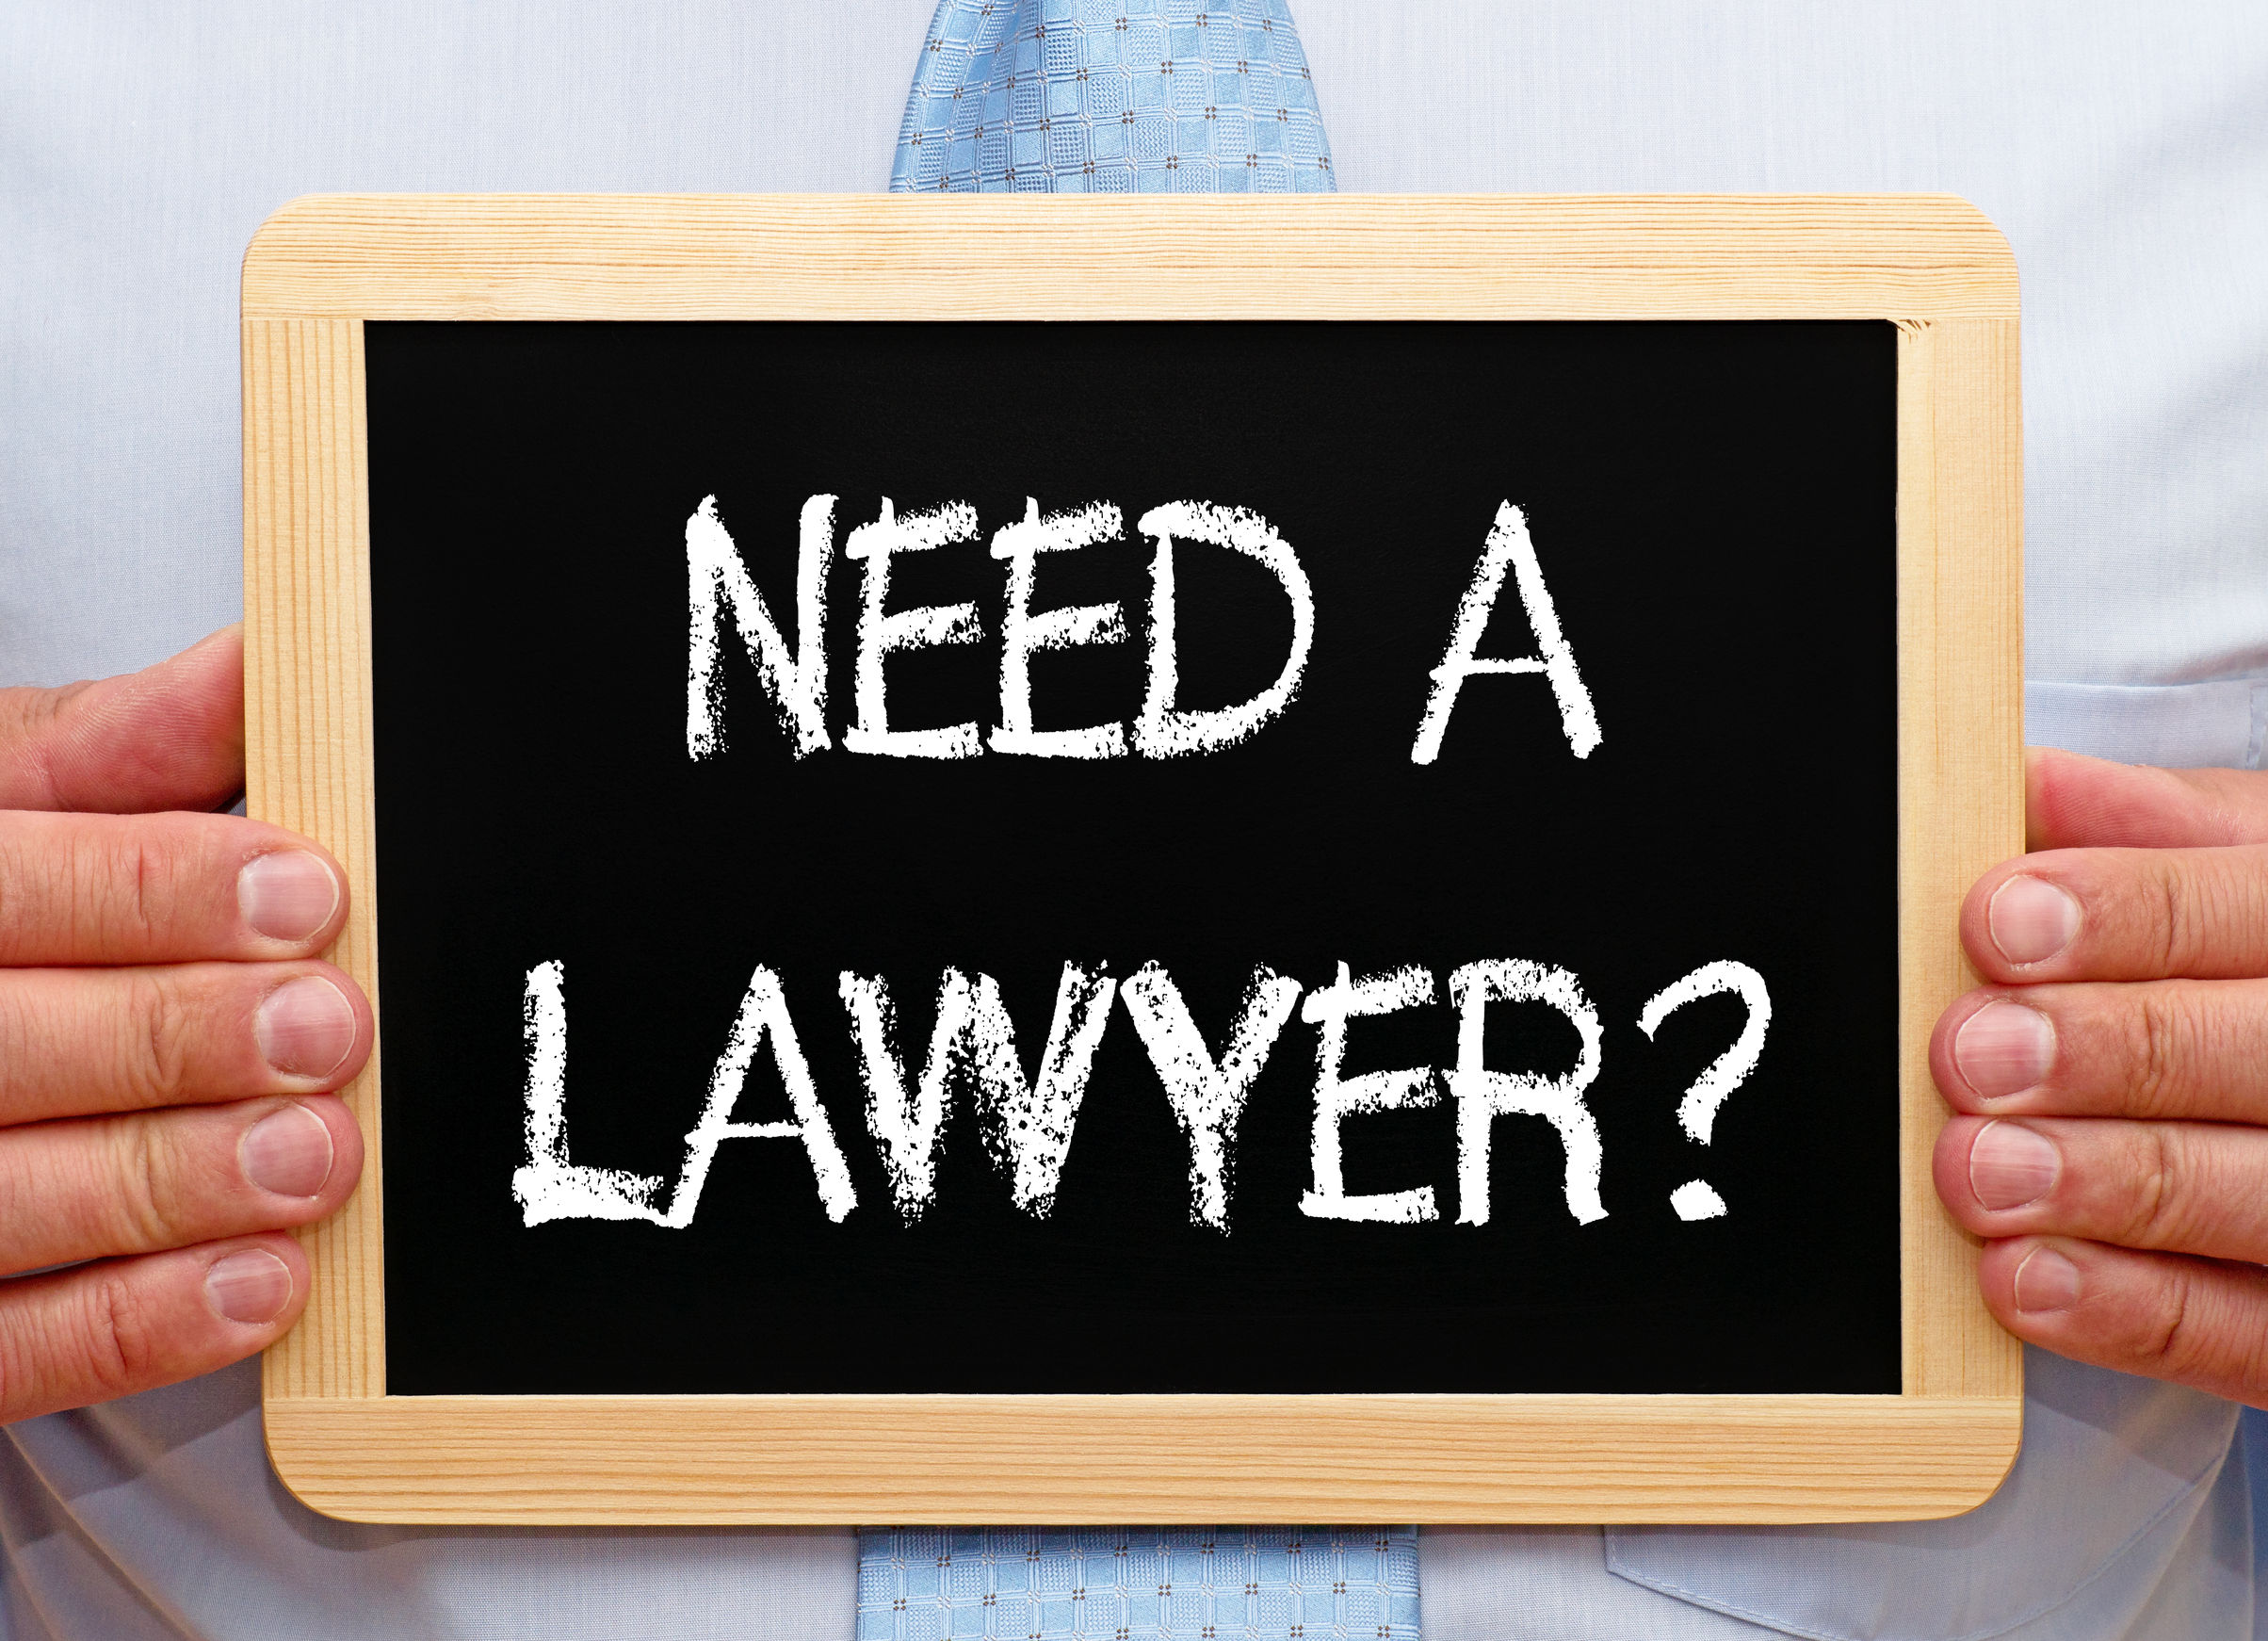 Attorneys that remove online news articles